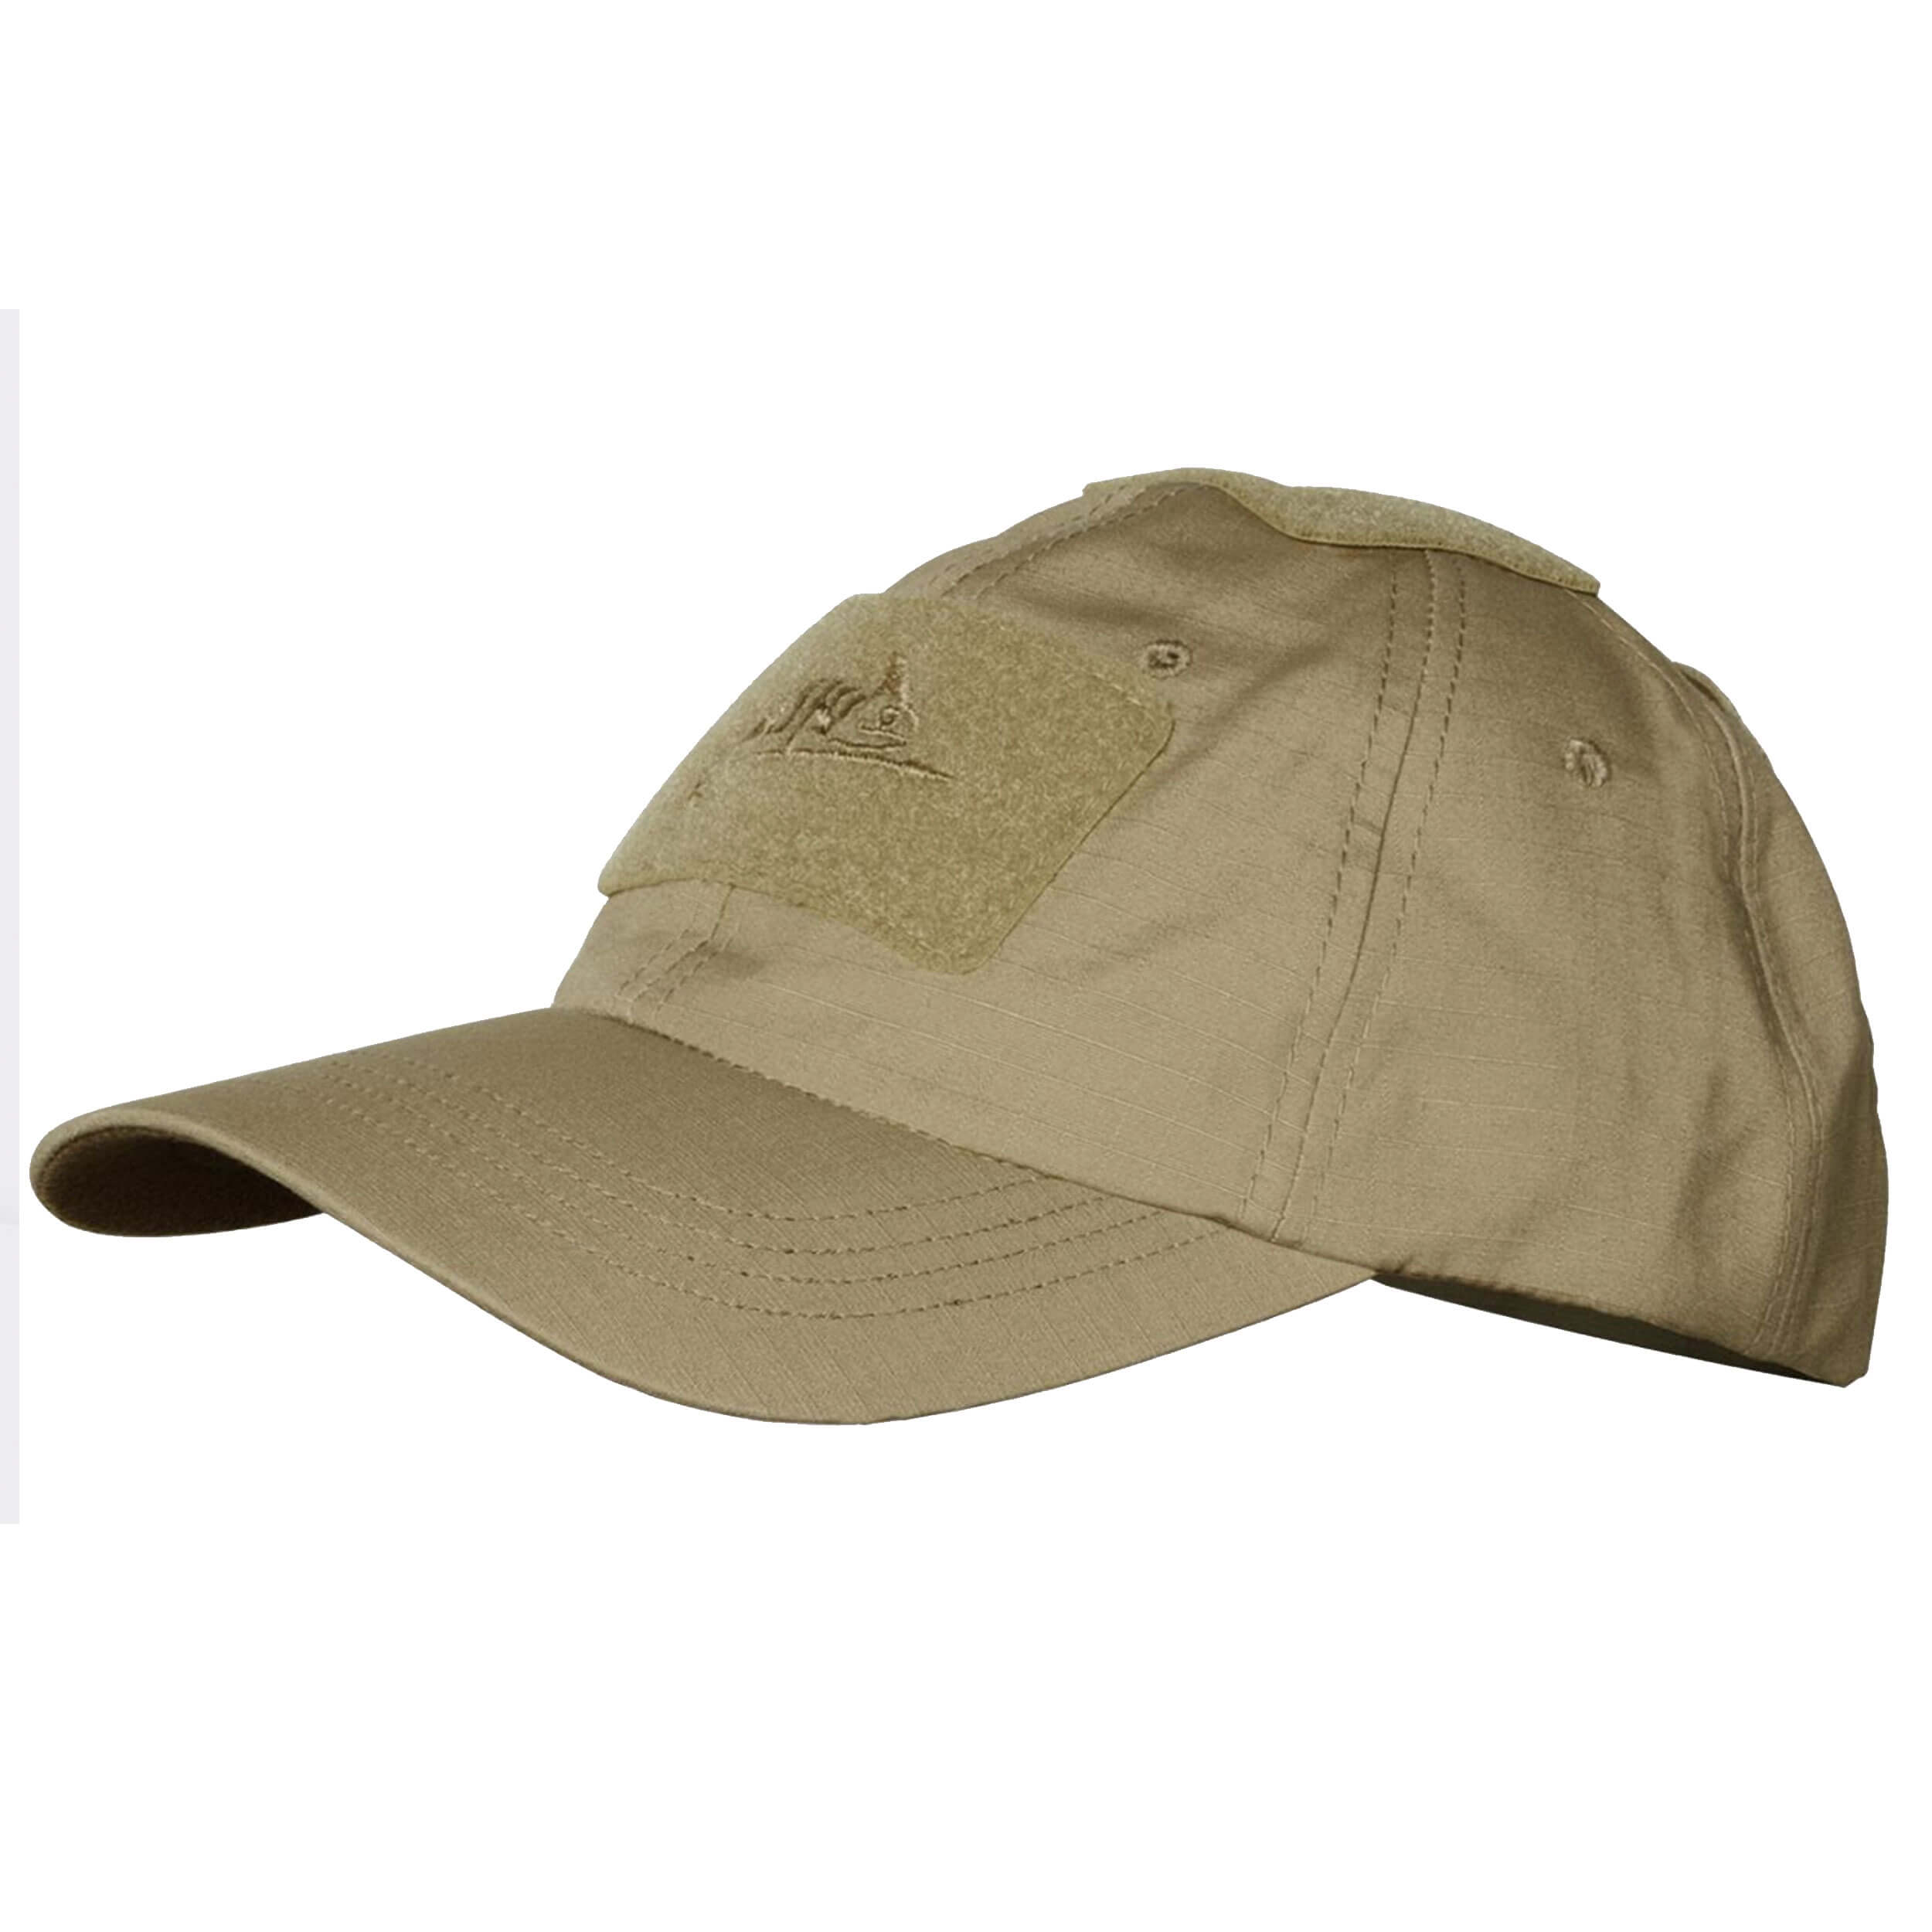 Helikon-Tex Tactical BBC Cap - PolyCotton Ripstop - Coyote